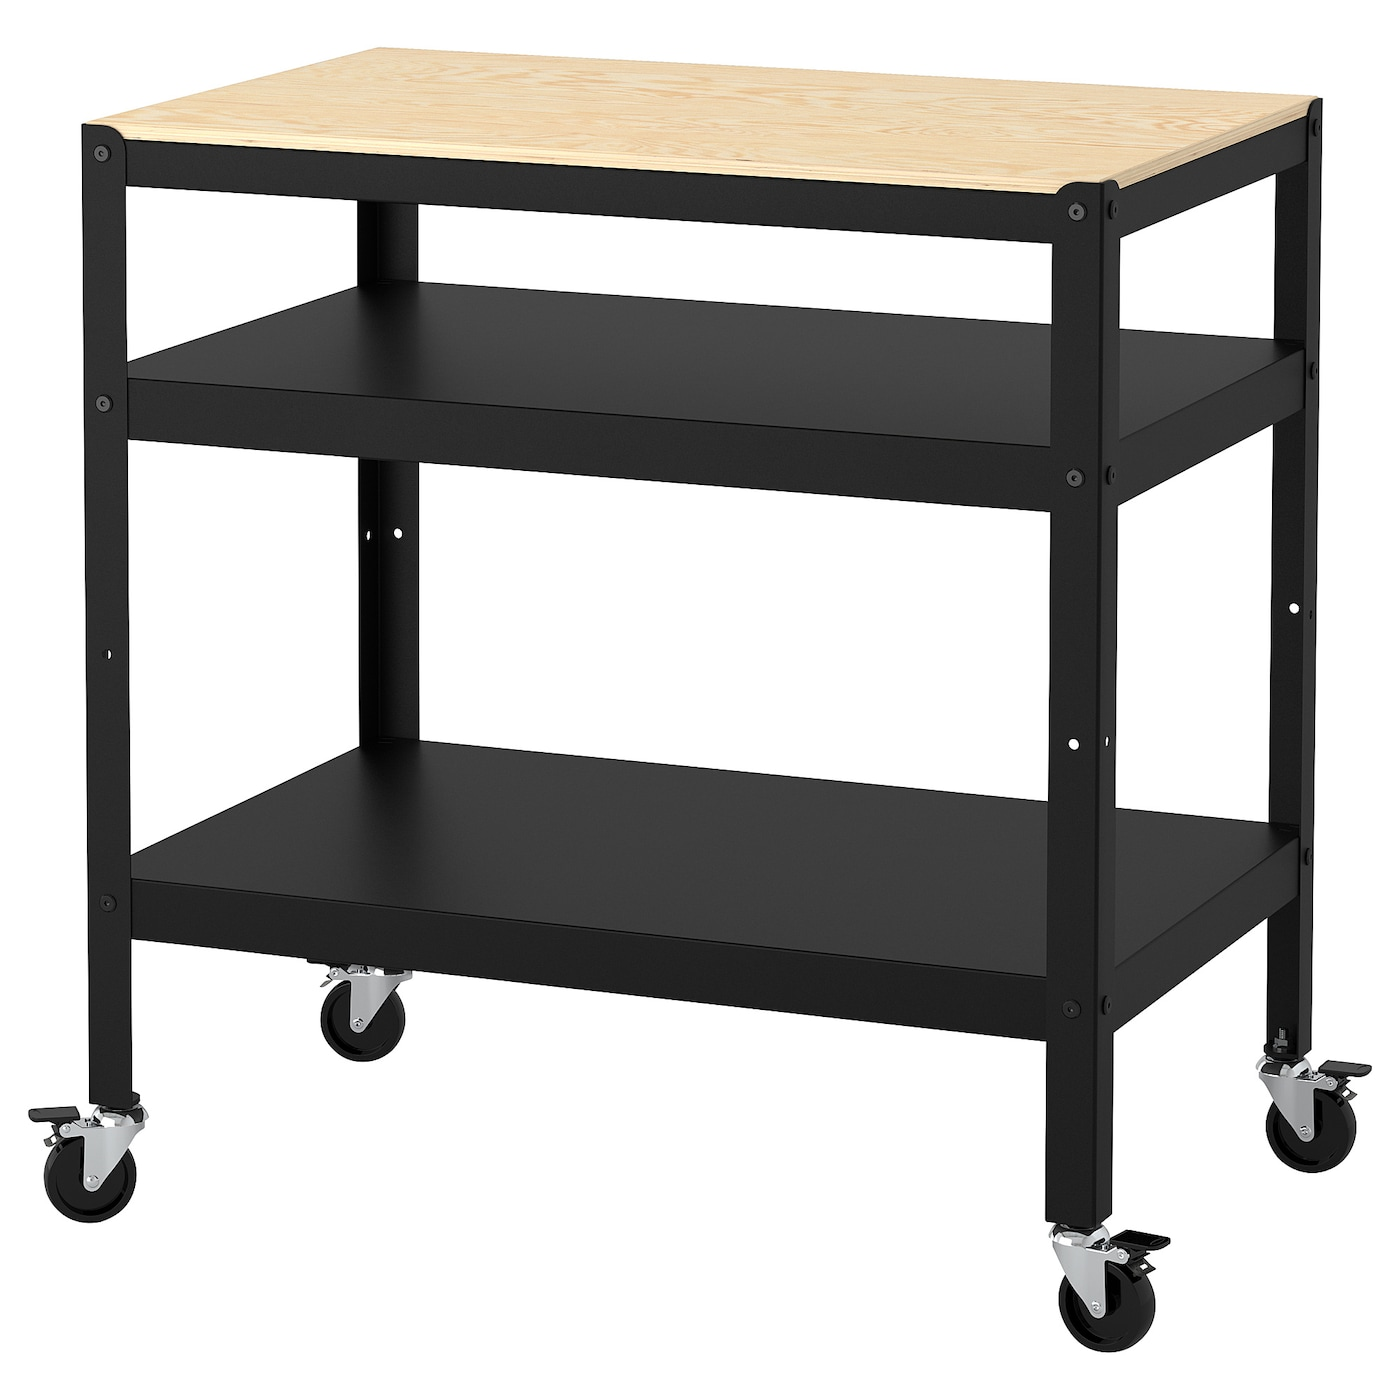 IKEA BROR trolley Can be used in damp areas indoors.